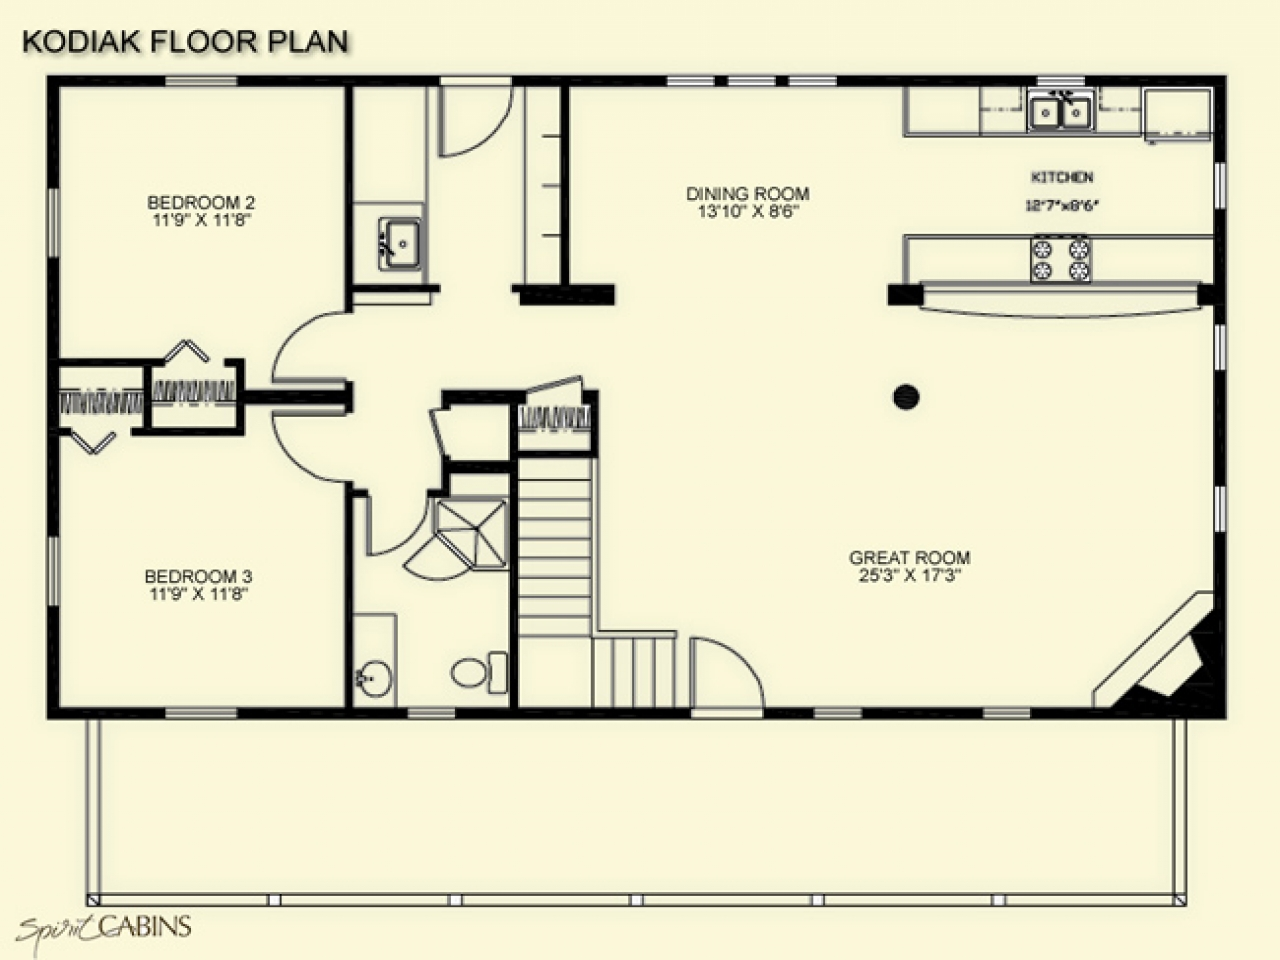 Log cabin floor plans under 1500 square feet log cabin for 1500 square foot floor plans